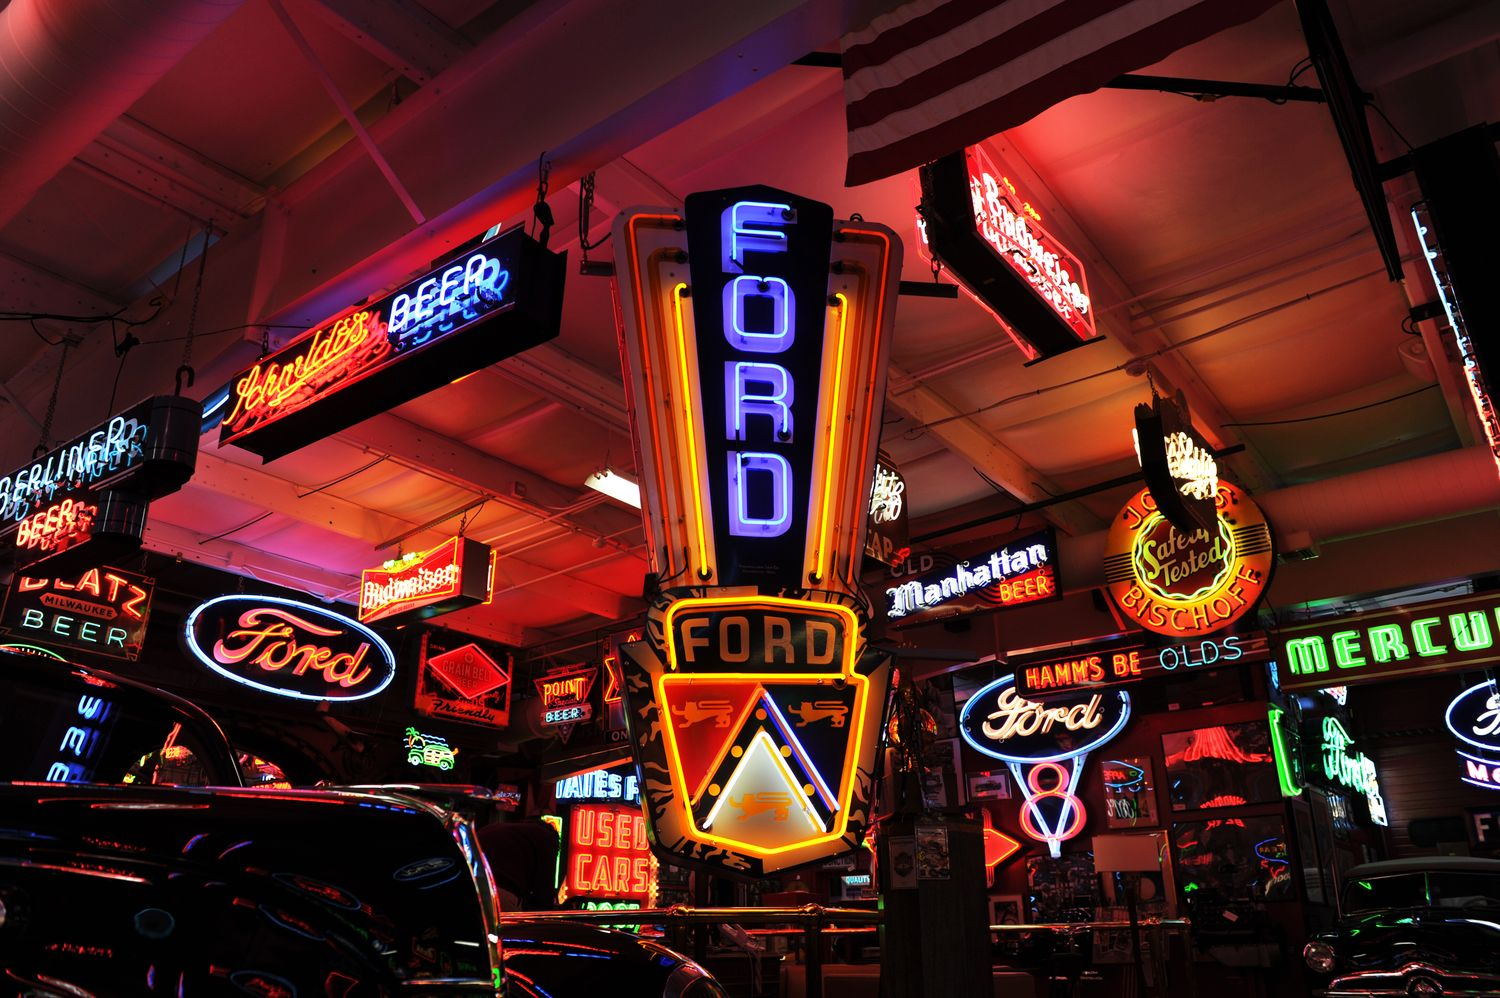 Garage Art Neon Signs Wiki Neon Sign Blog Ford Neon Sign For Store Collection